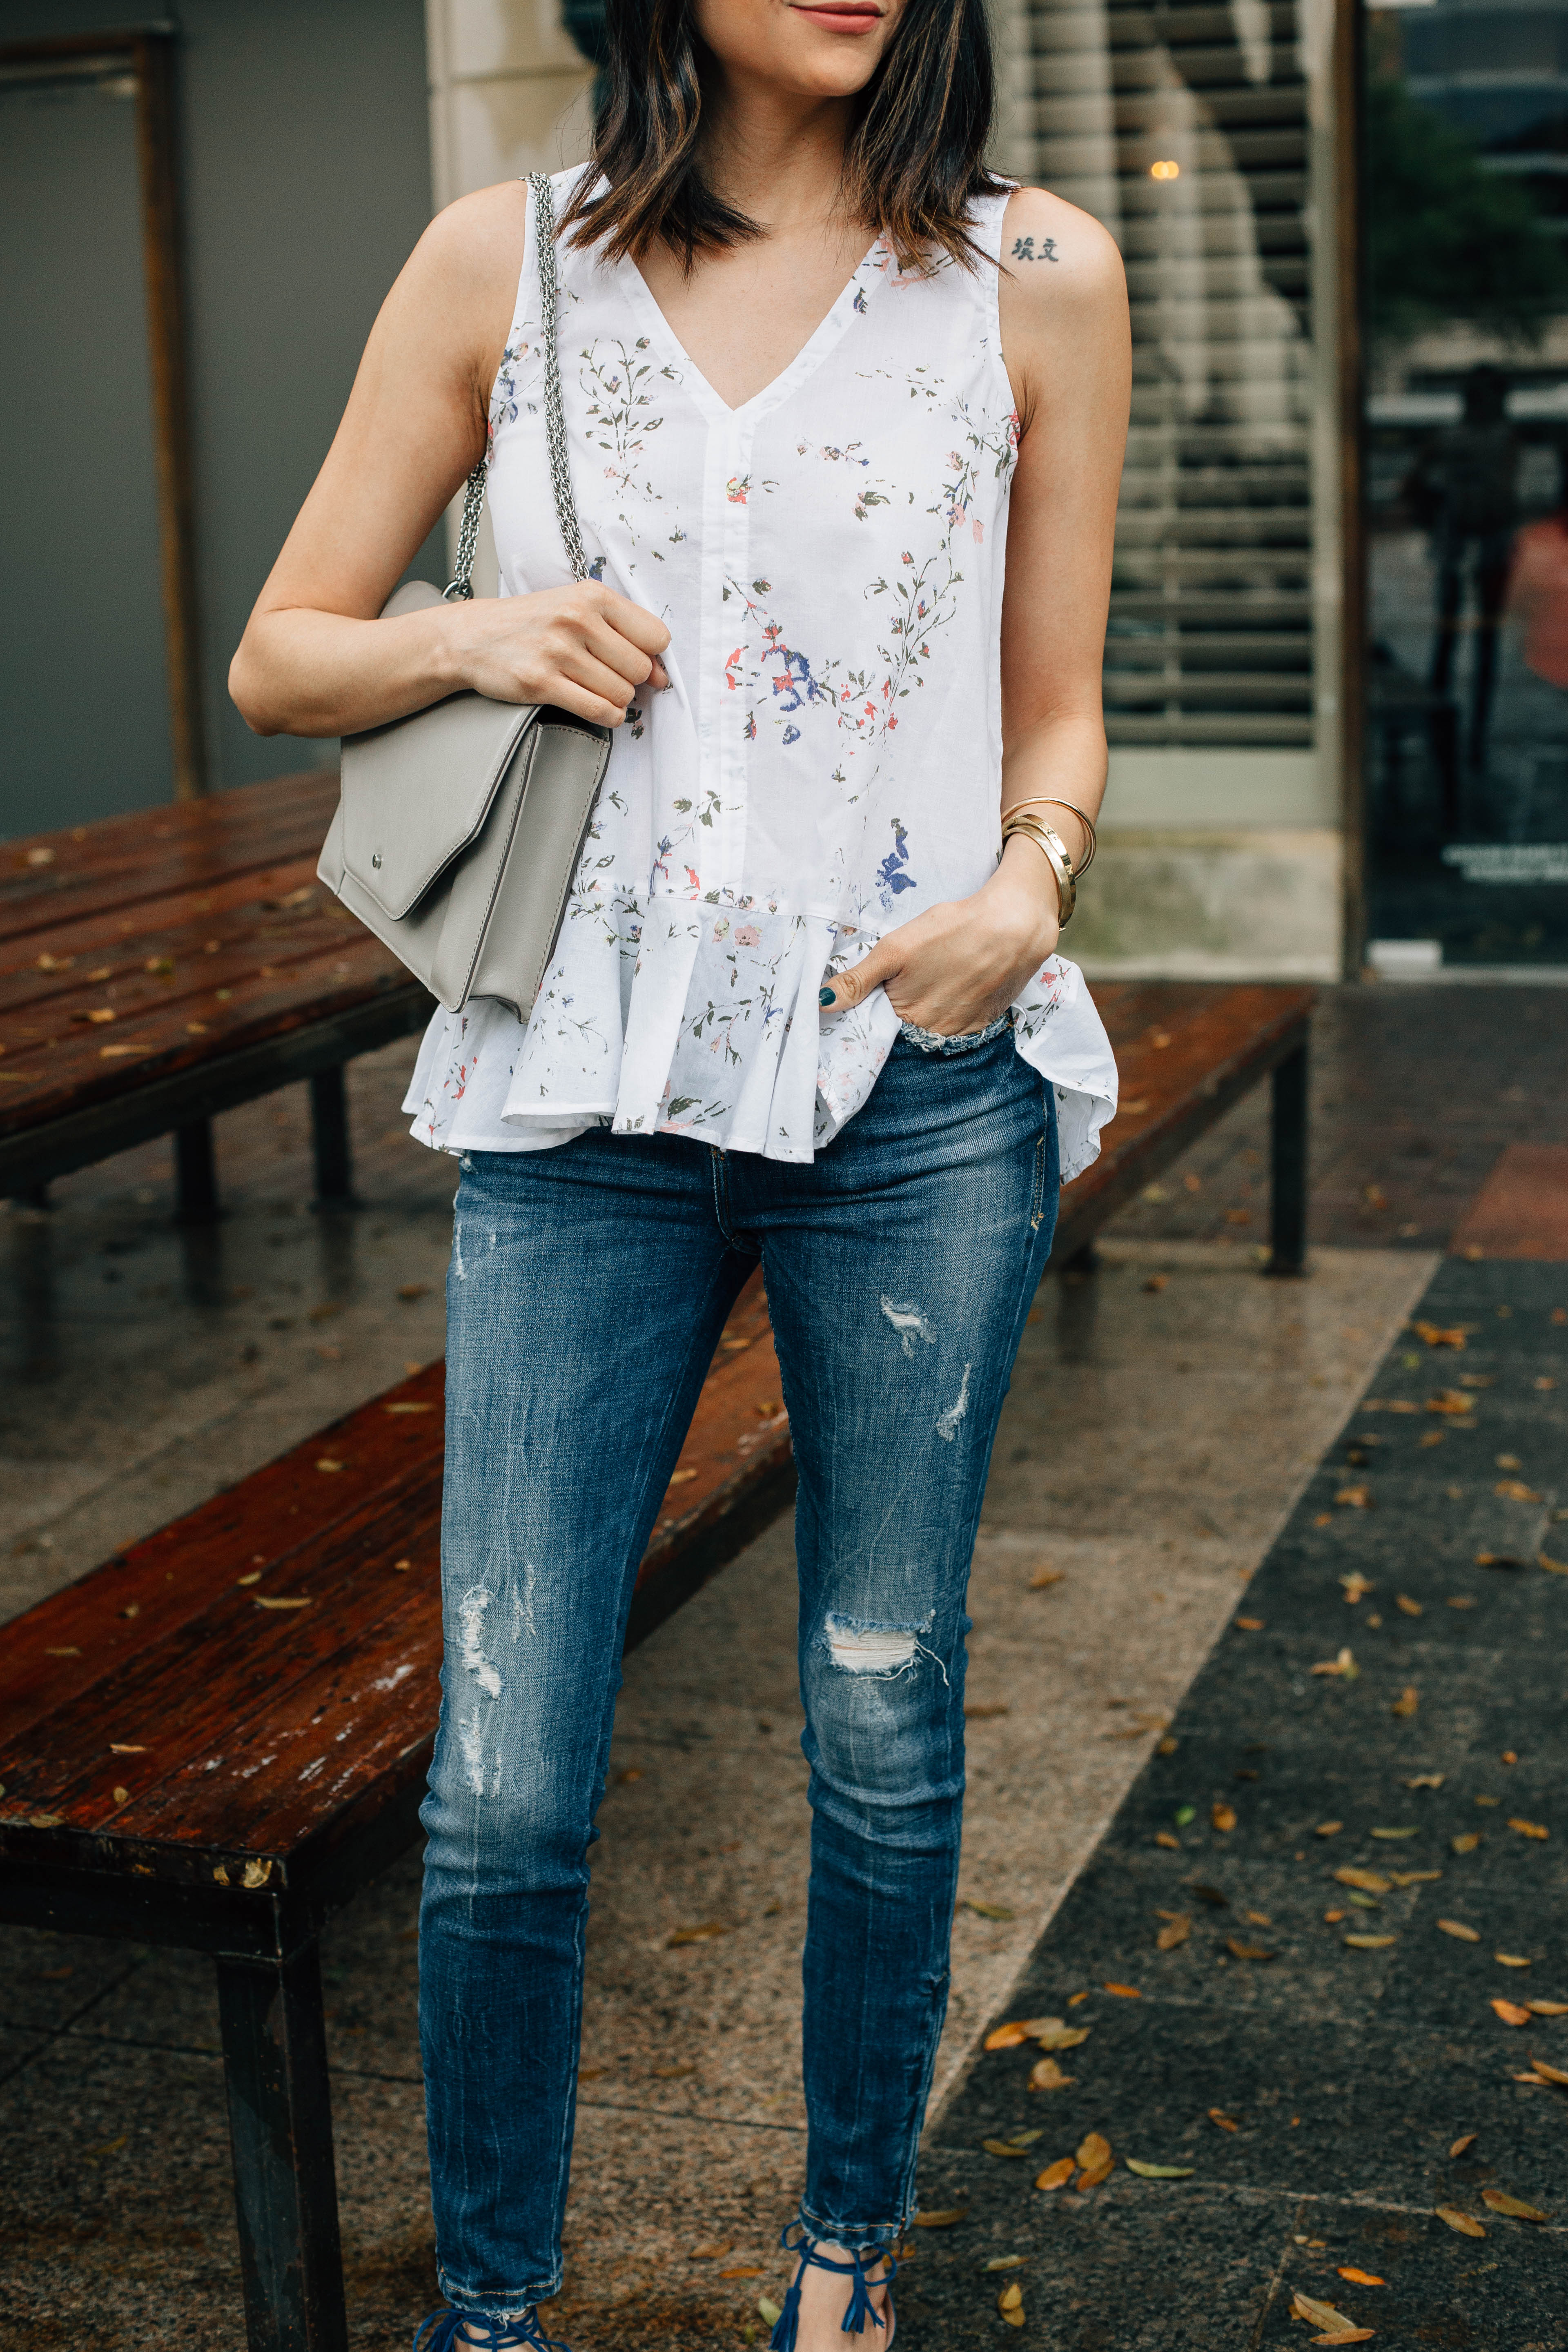 Daily Craving, Fashion Blogger, Floral Print Tops, Skinny Jeans, Lace Up Sandals, Peplum Top